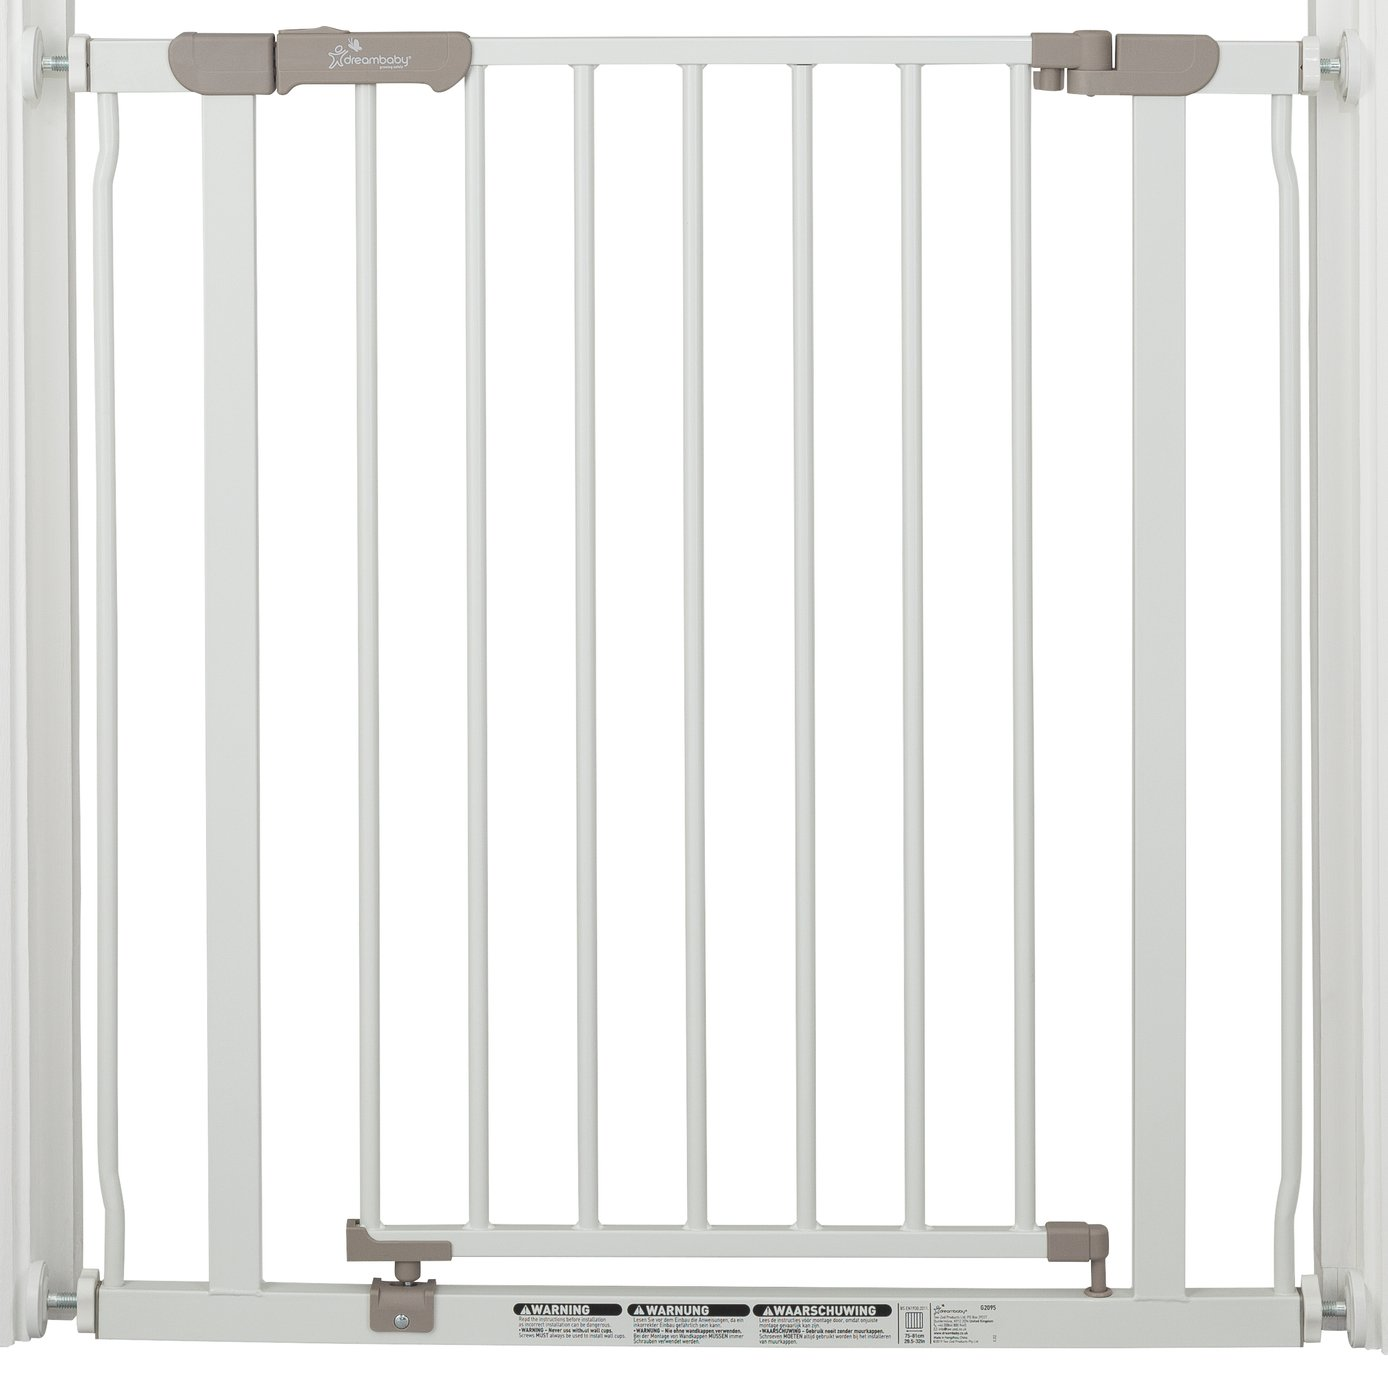 Dreambaby Ava Pressure Mounted Security Gate - White